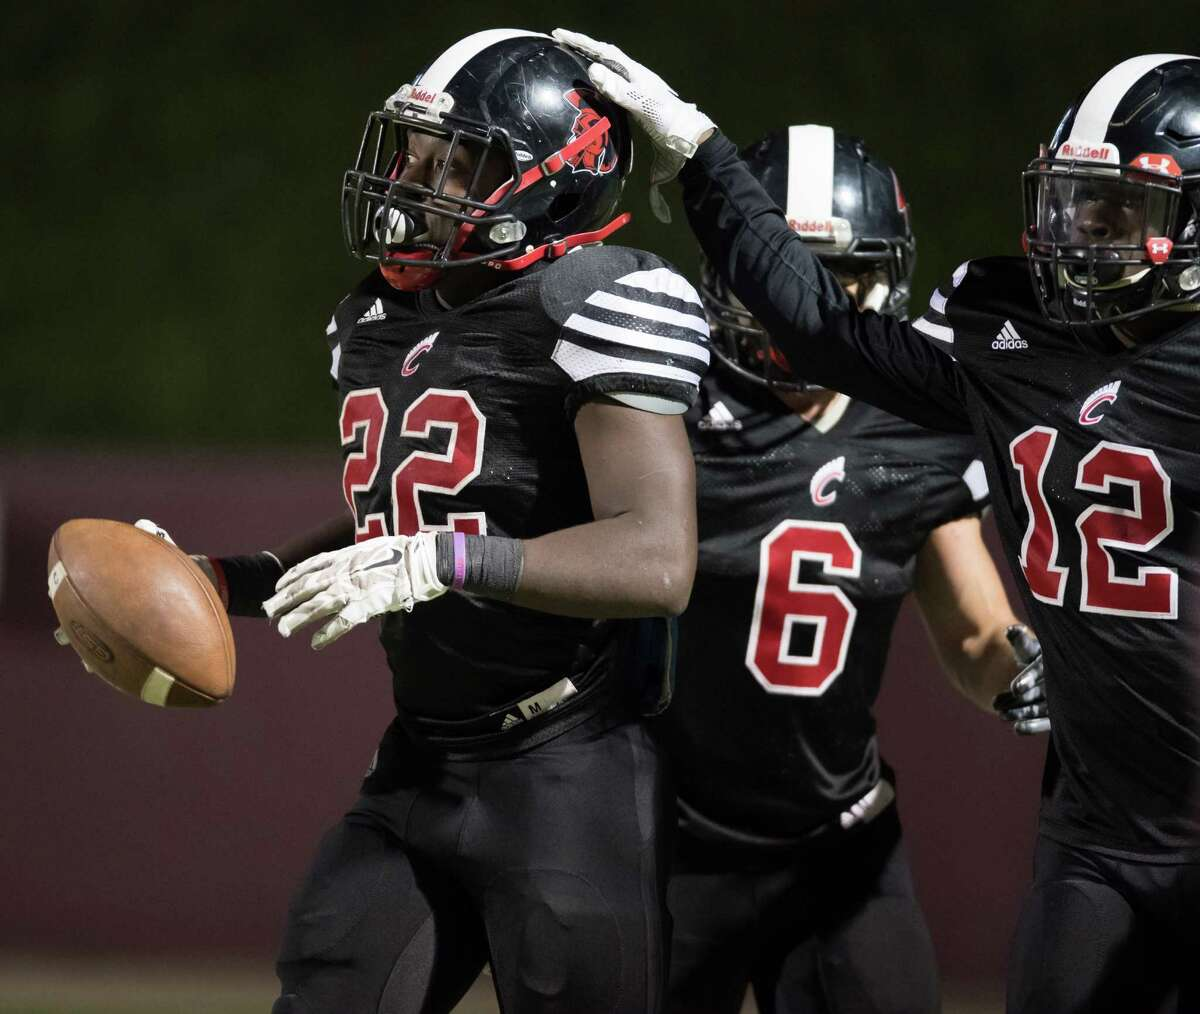 Dvontae McKinney (12) of the Coldspring Trojans congratulates Don Taylor (22) after one of his four touchdowns against the La Marque Cougars in a high school football Class 3A Division 1 Bi-District Playoff Game on Thursday, November 10, 2016 at Abshier Stadium in Deer Park Texas.